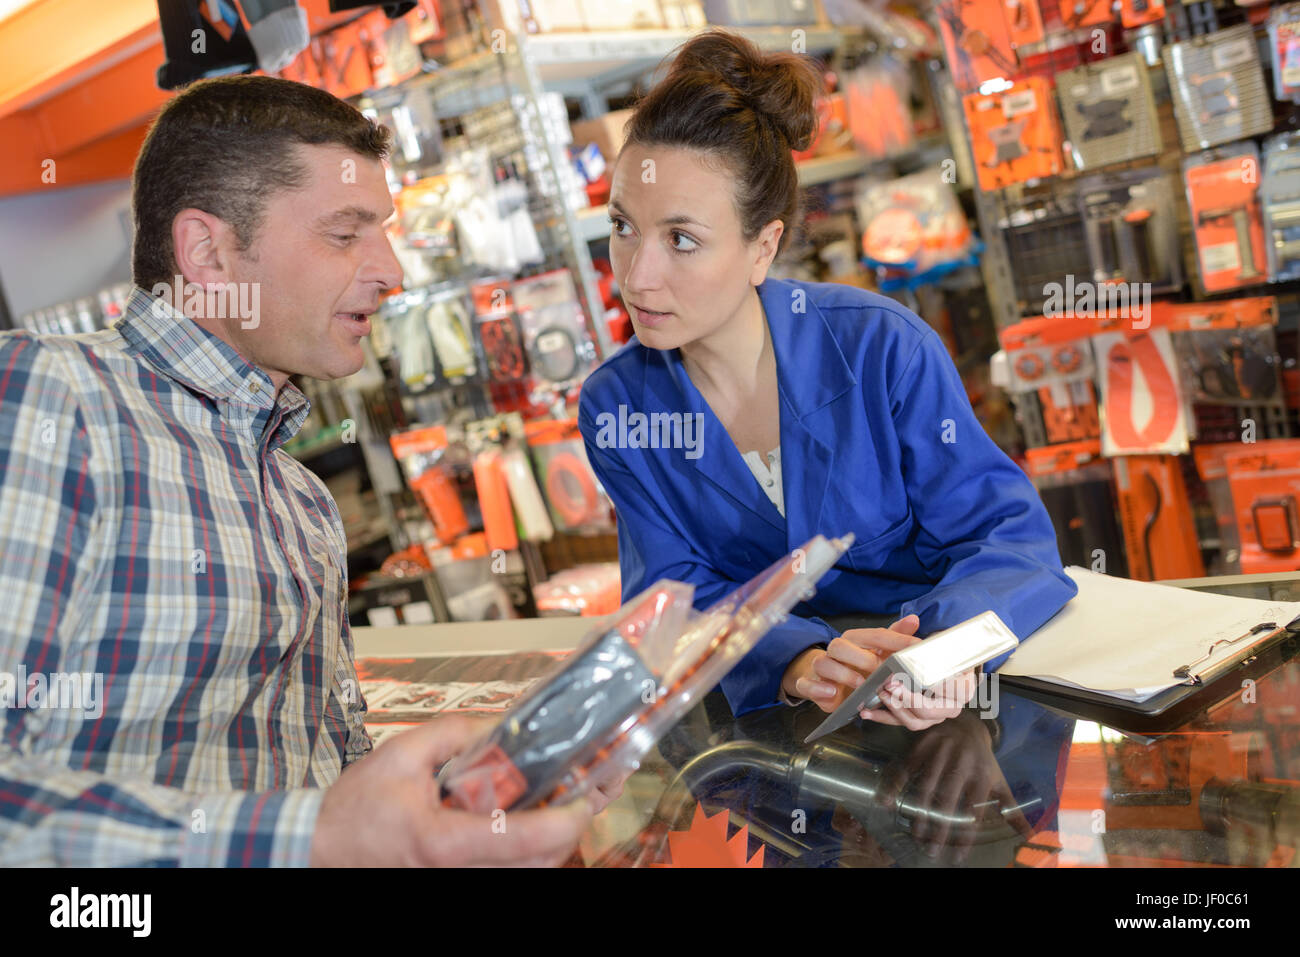 Clerk showing customer the price on a calculator Stock Photo